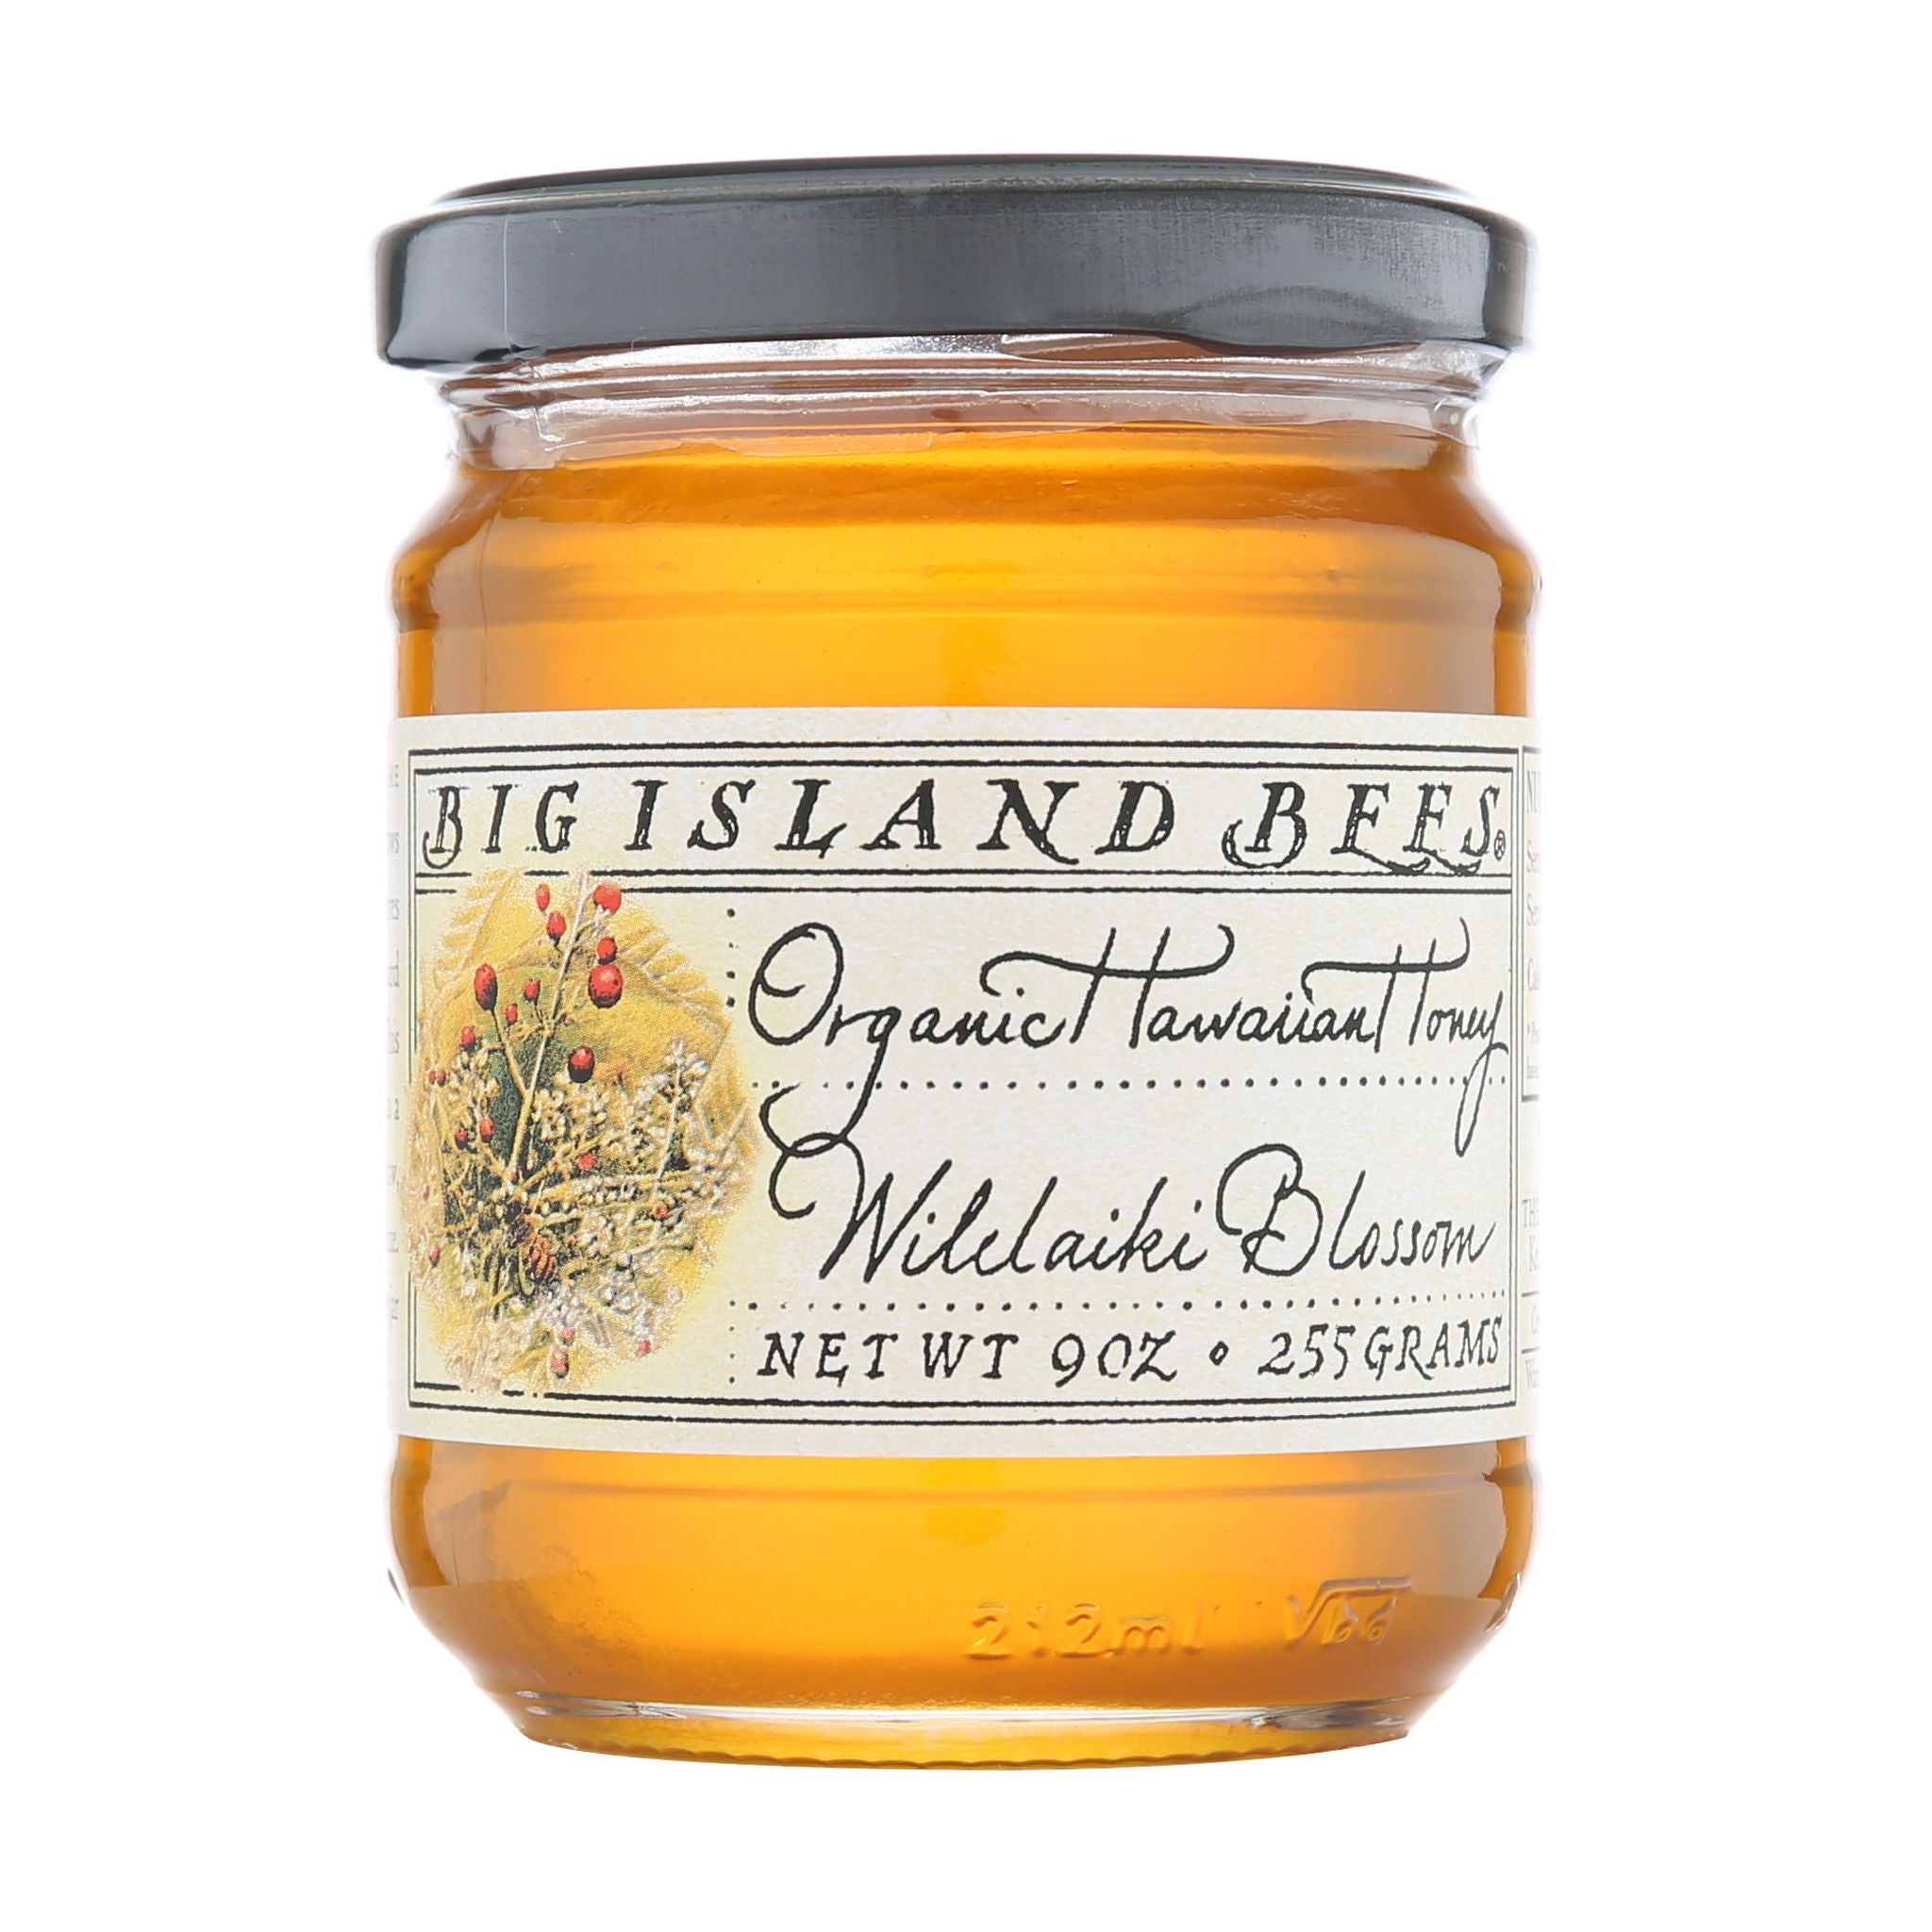 Big Island Bees Honey Wilelaiki Honey